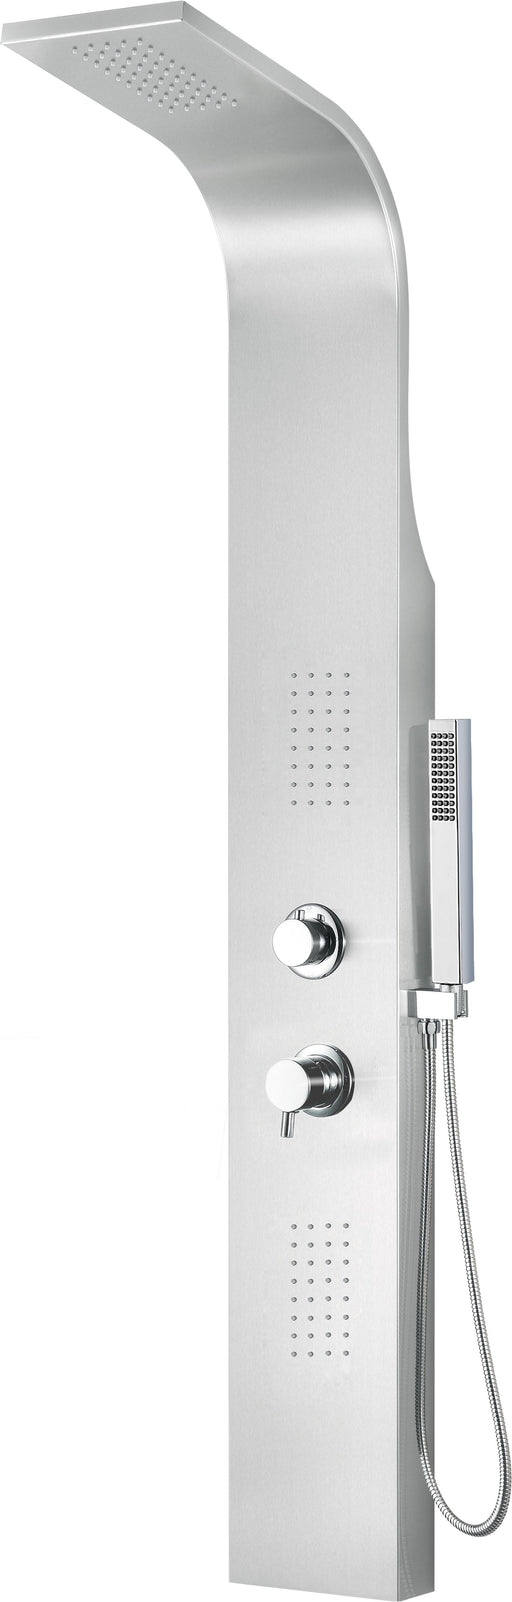 Alfi Brand ABSP20 Modern Stainless Steel Shower Panel with 2 Body Sprays-DirectSinks